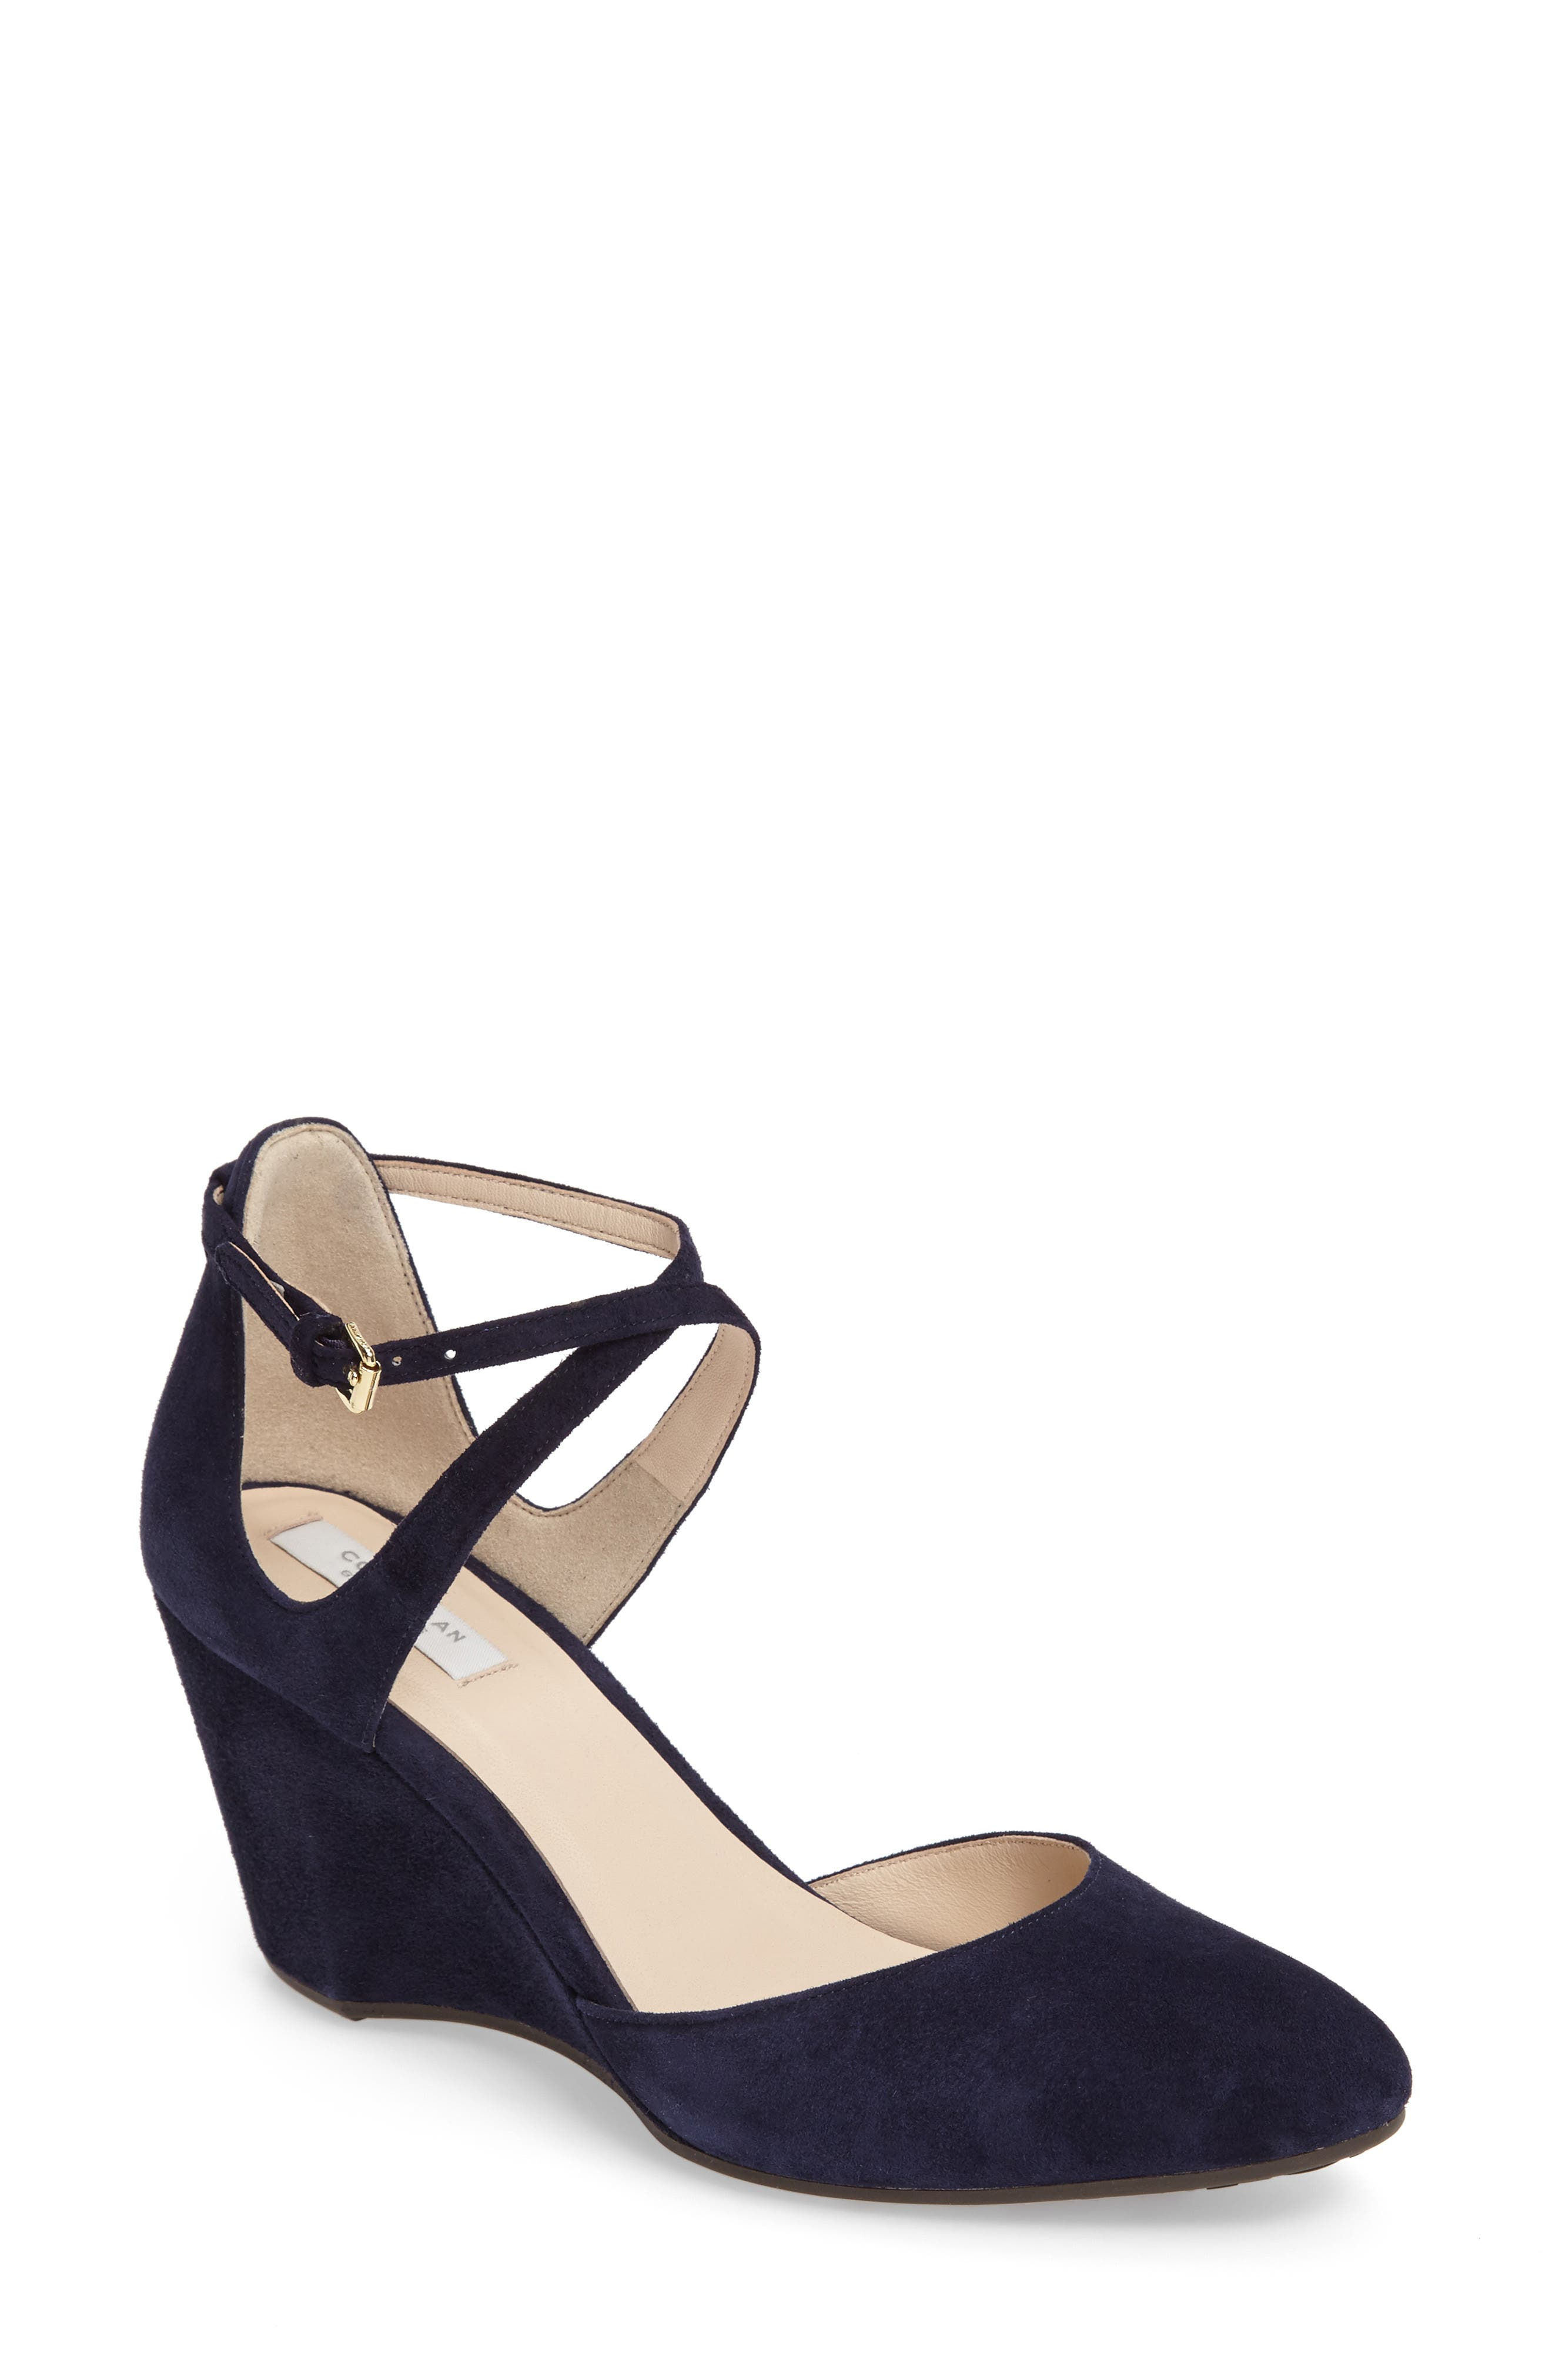 Main Image - Cole Haan Lacey Ankle Strap Wedge Pump (Women)